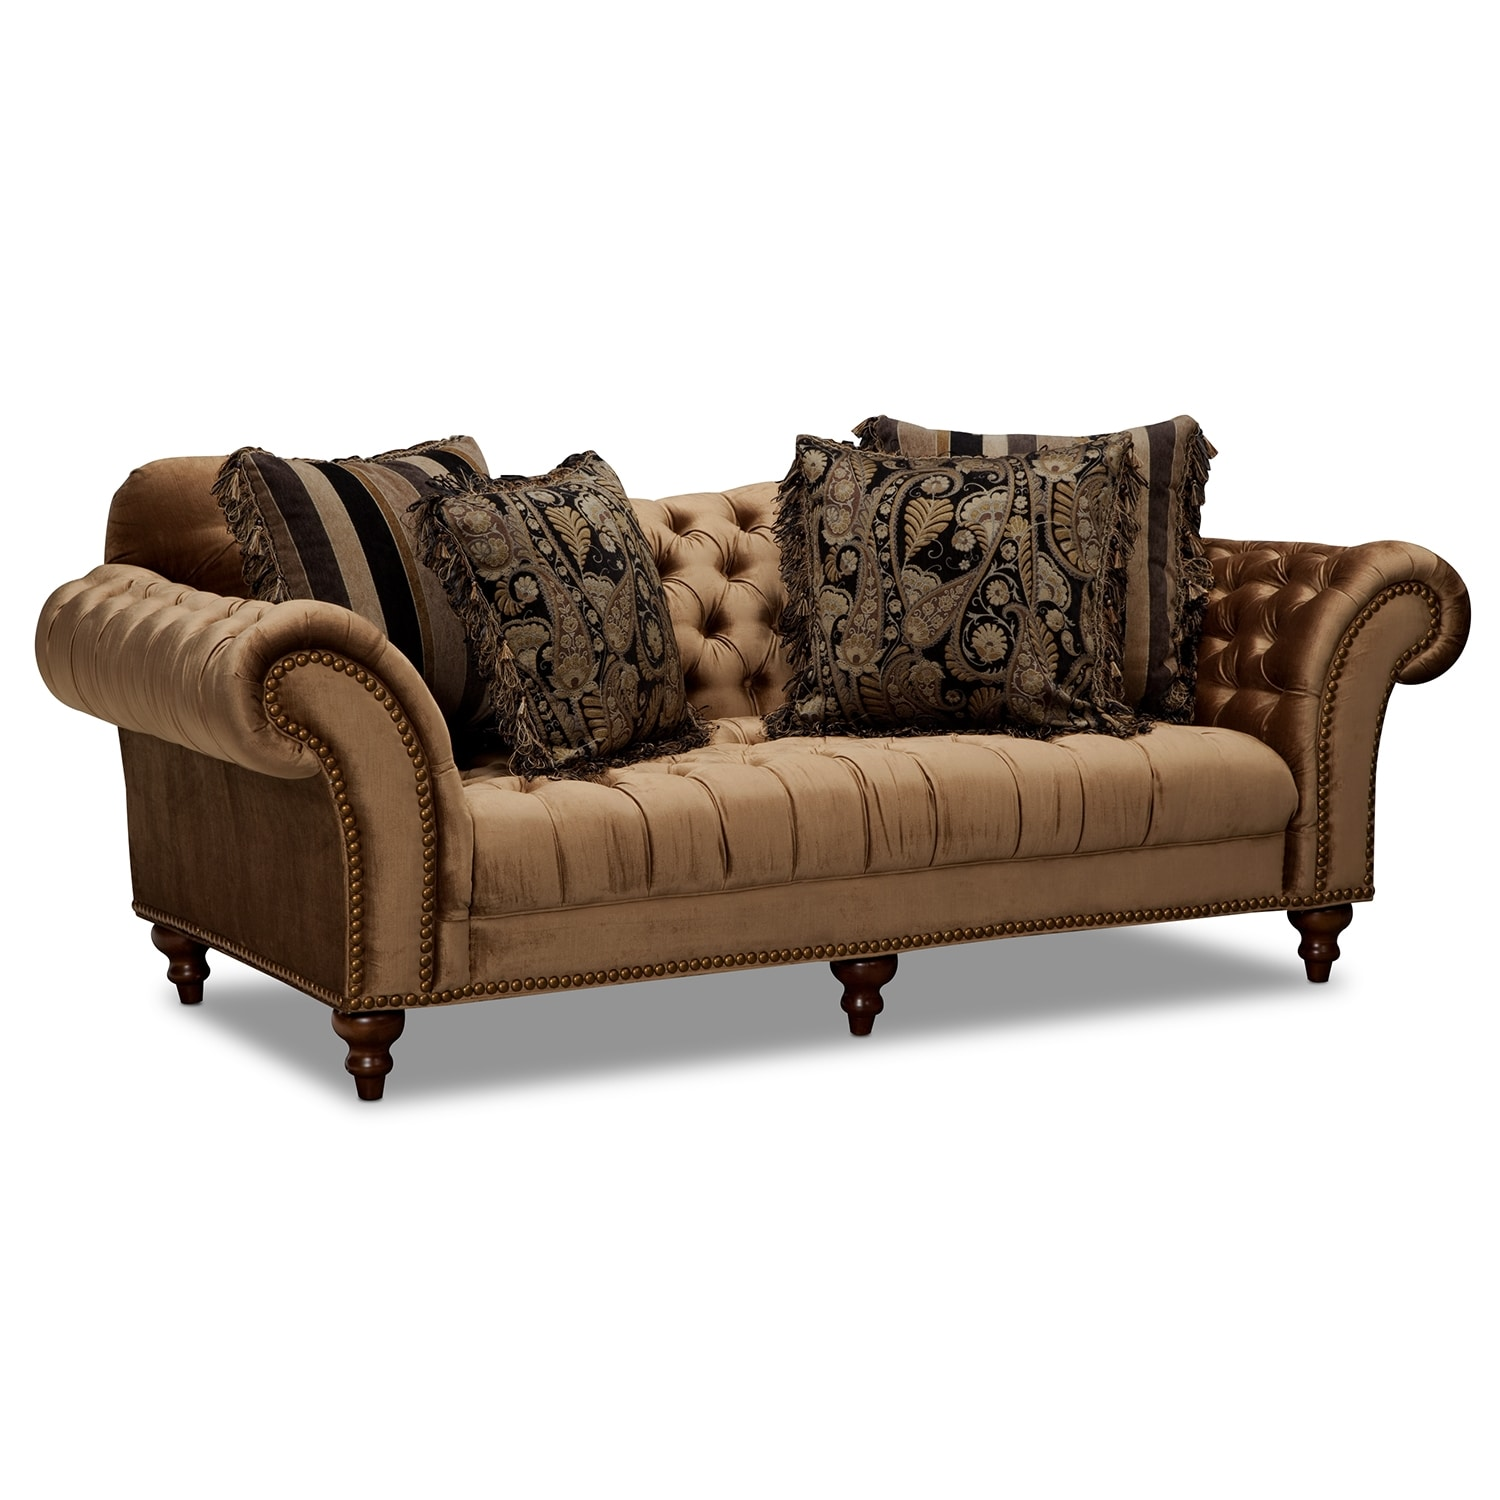 Brittney Sofa Bronze Value City Furniture And Mattresses